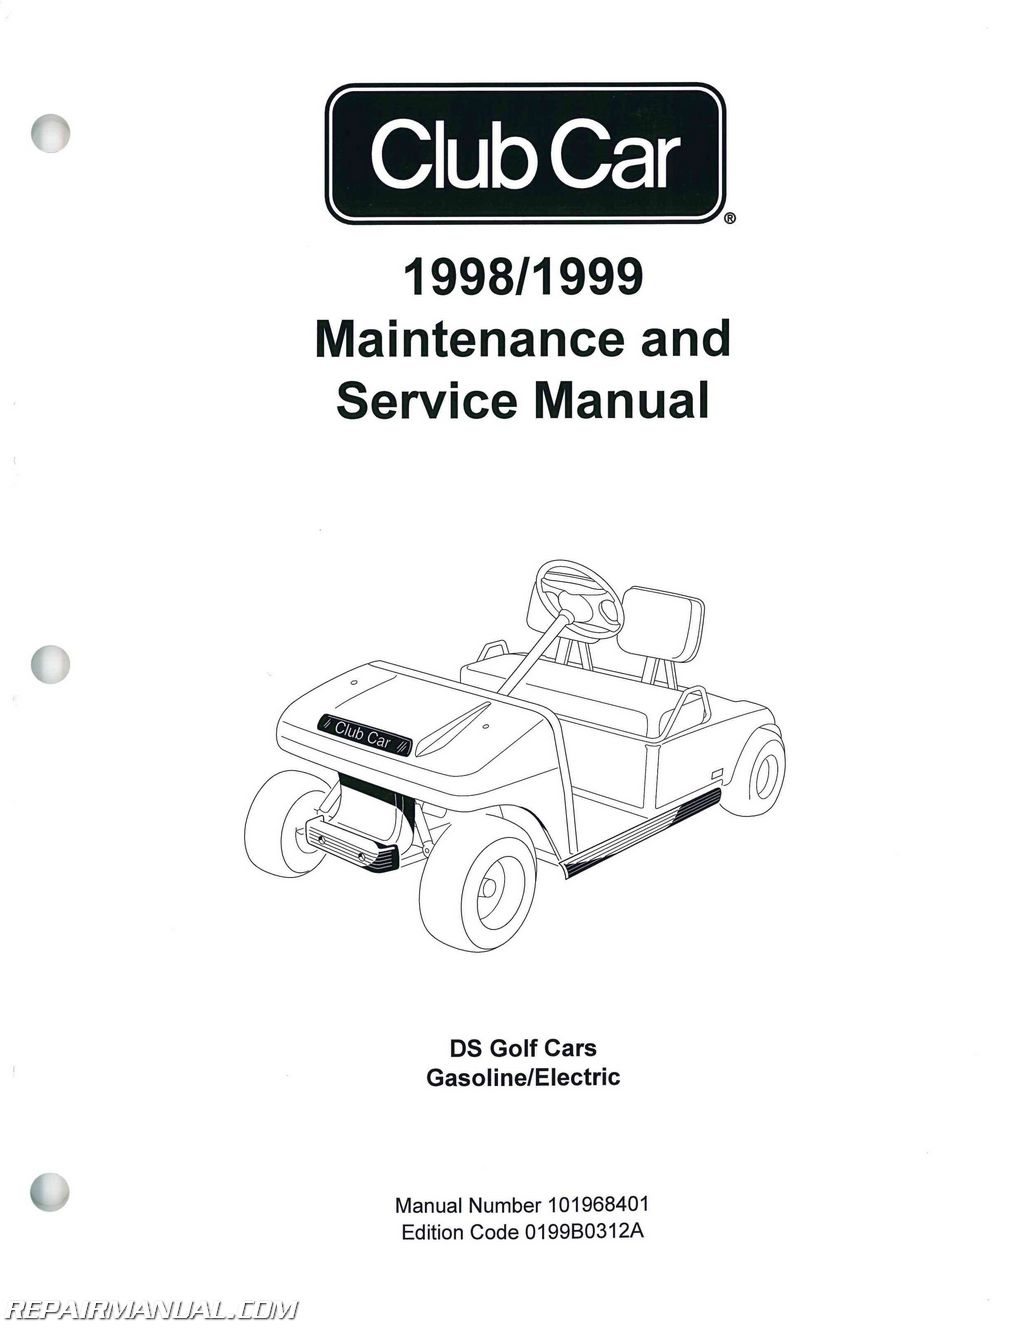 club car manuals and diagrams 2 sg dbd de \u20221998 1999 club car ds golf car service manual rh repairmanual com club car manuals and diagrams gas club car wiring diagram